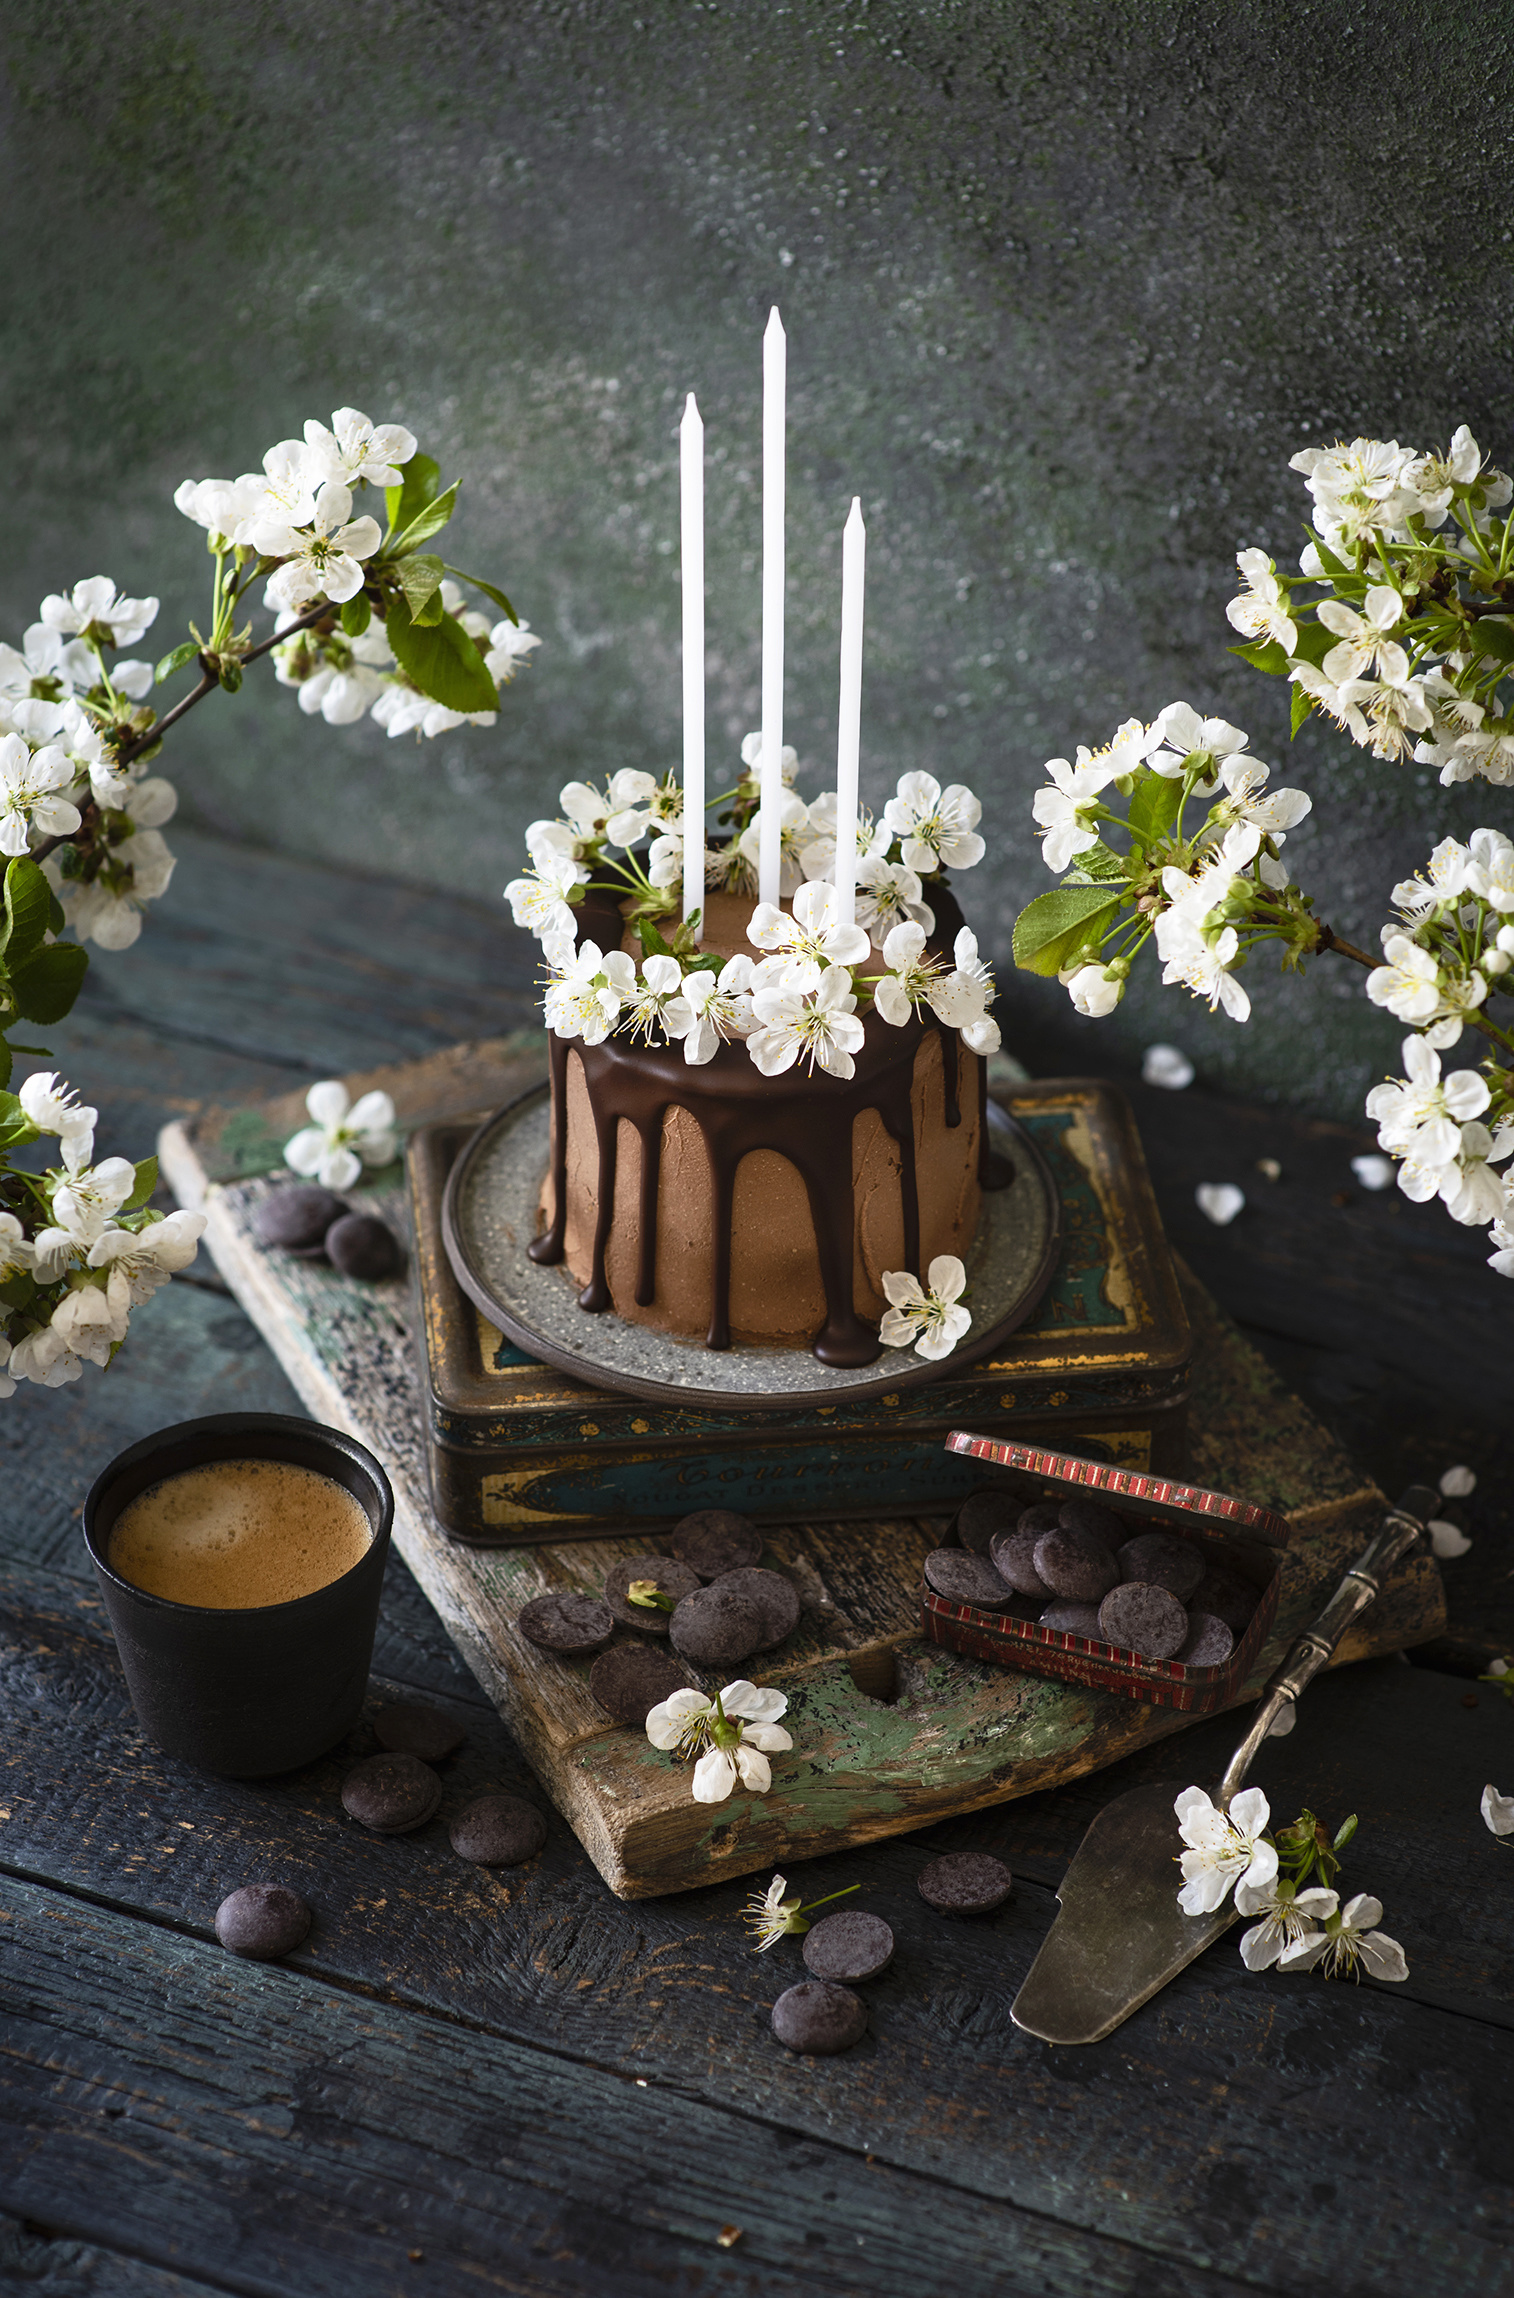 Photo Chocolate Cakes Coffee Cappuccino Flowers Highball glass Food Candles Branches Wood planks Flowering trees  for Mobile phone Torte flower boards